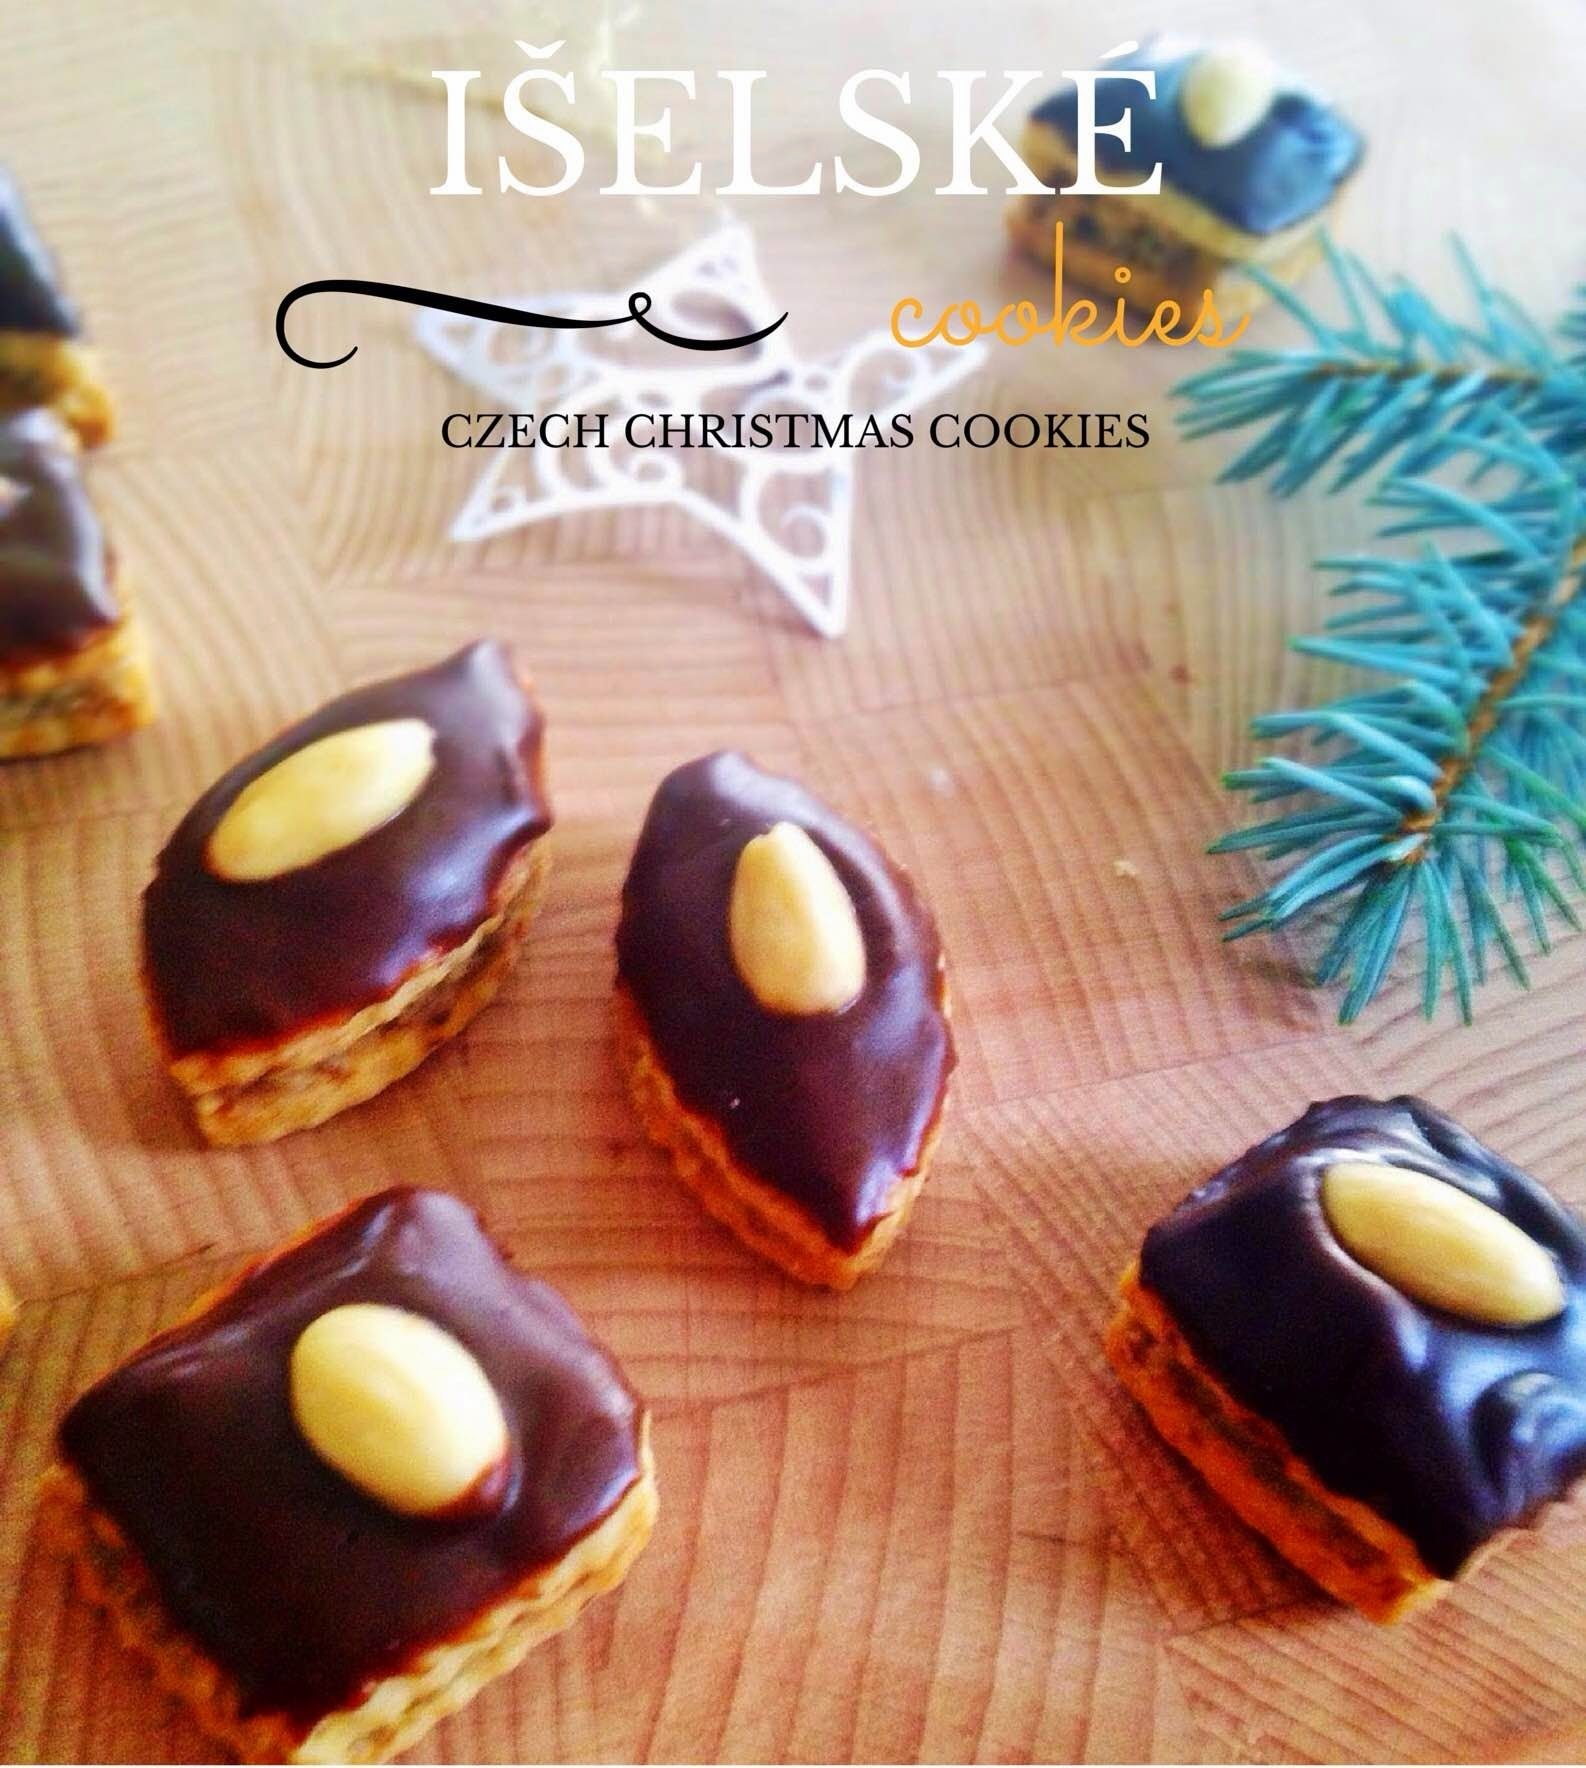 "CZECH CHRISTMAS COOKIES ""ISELSKE"""